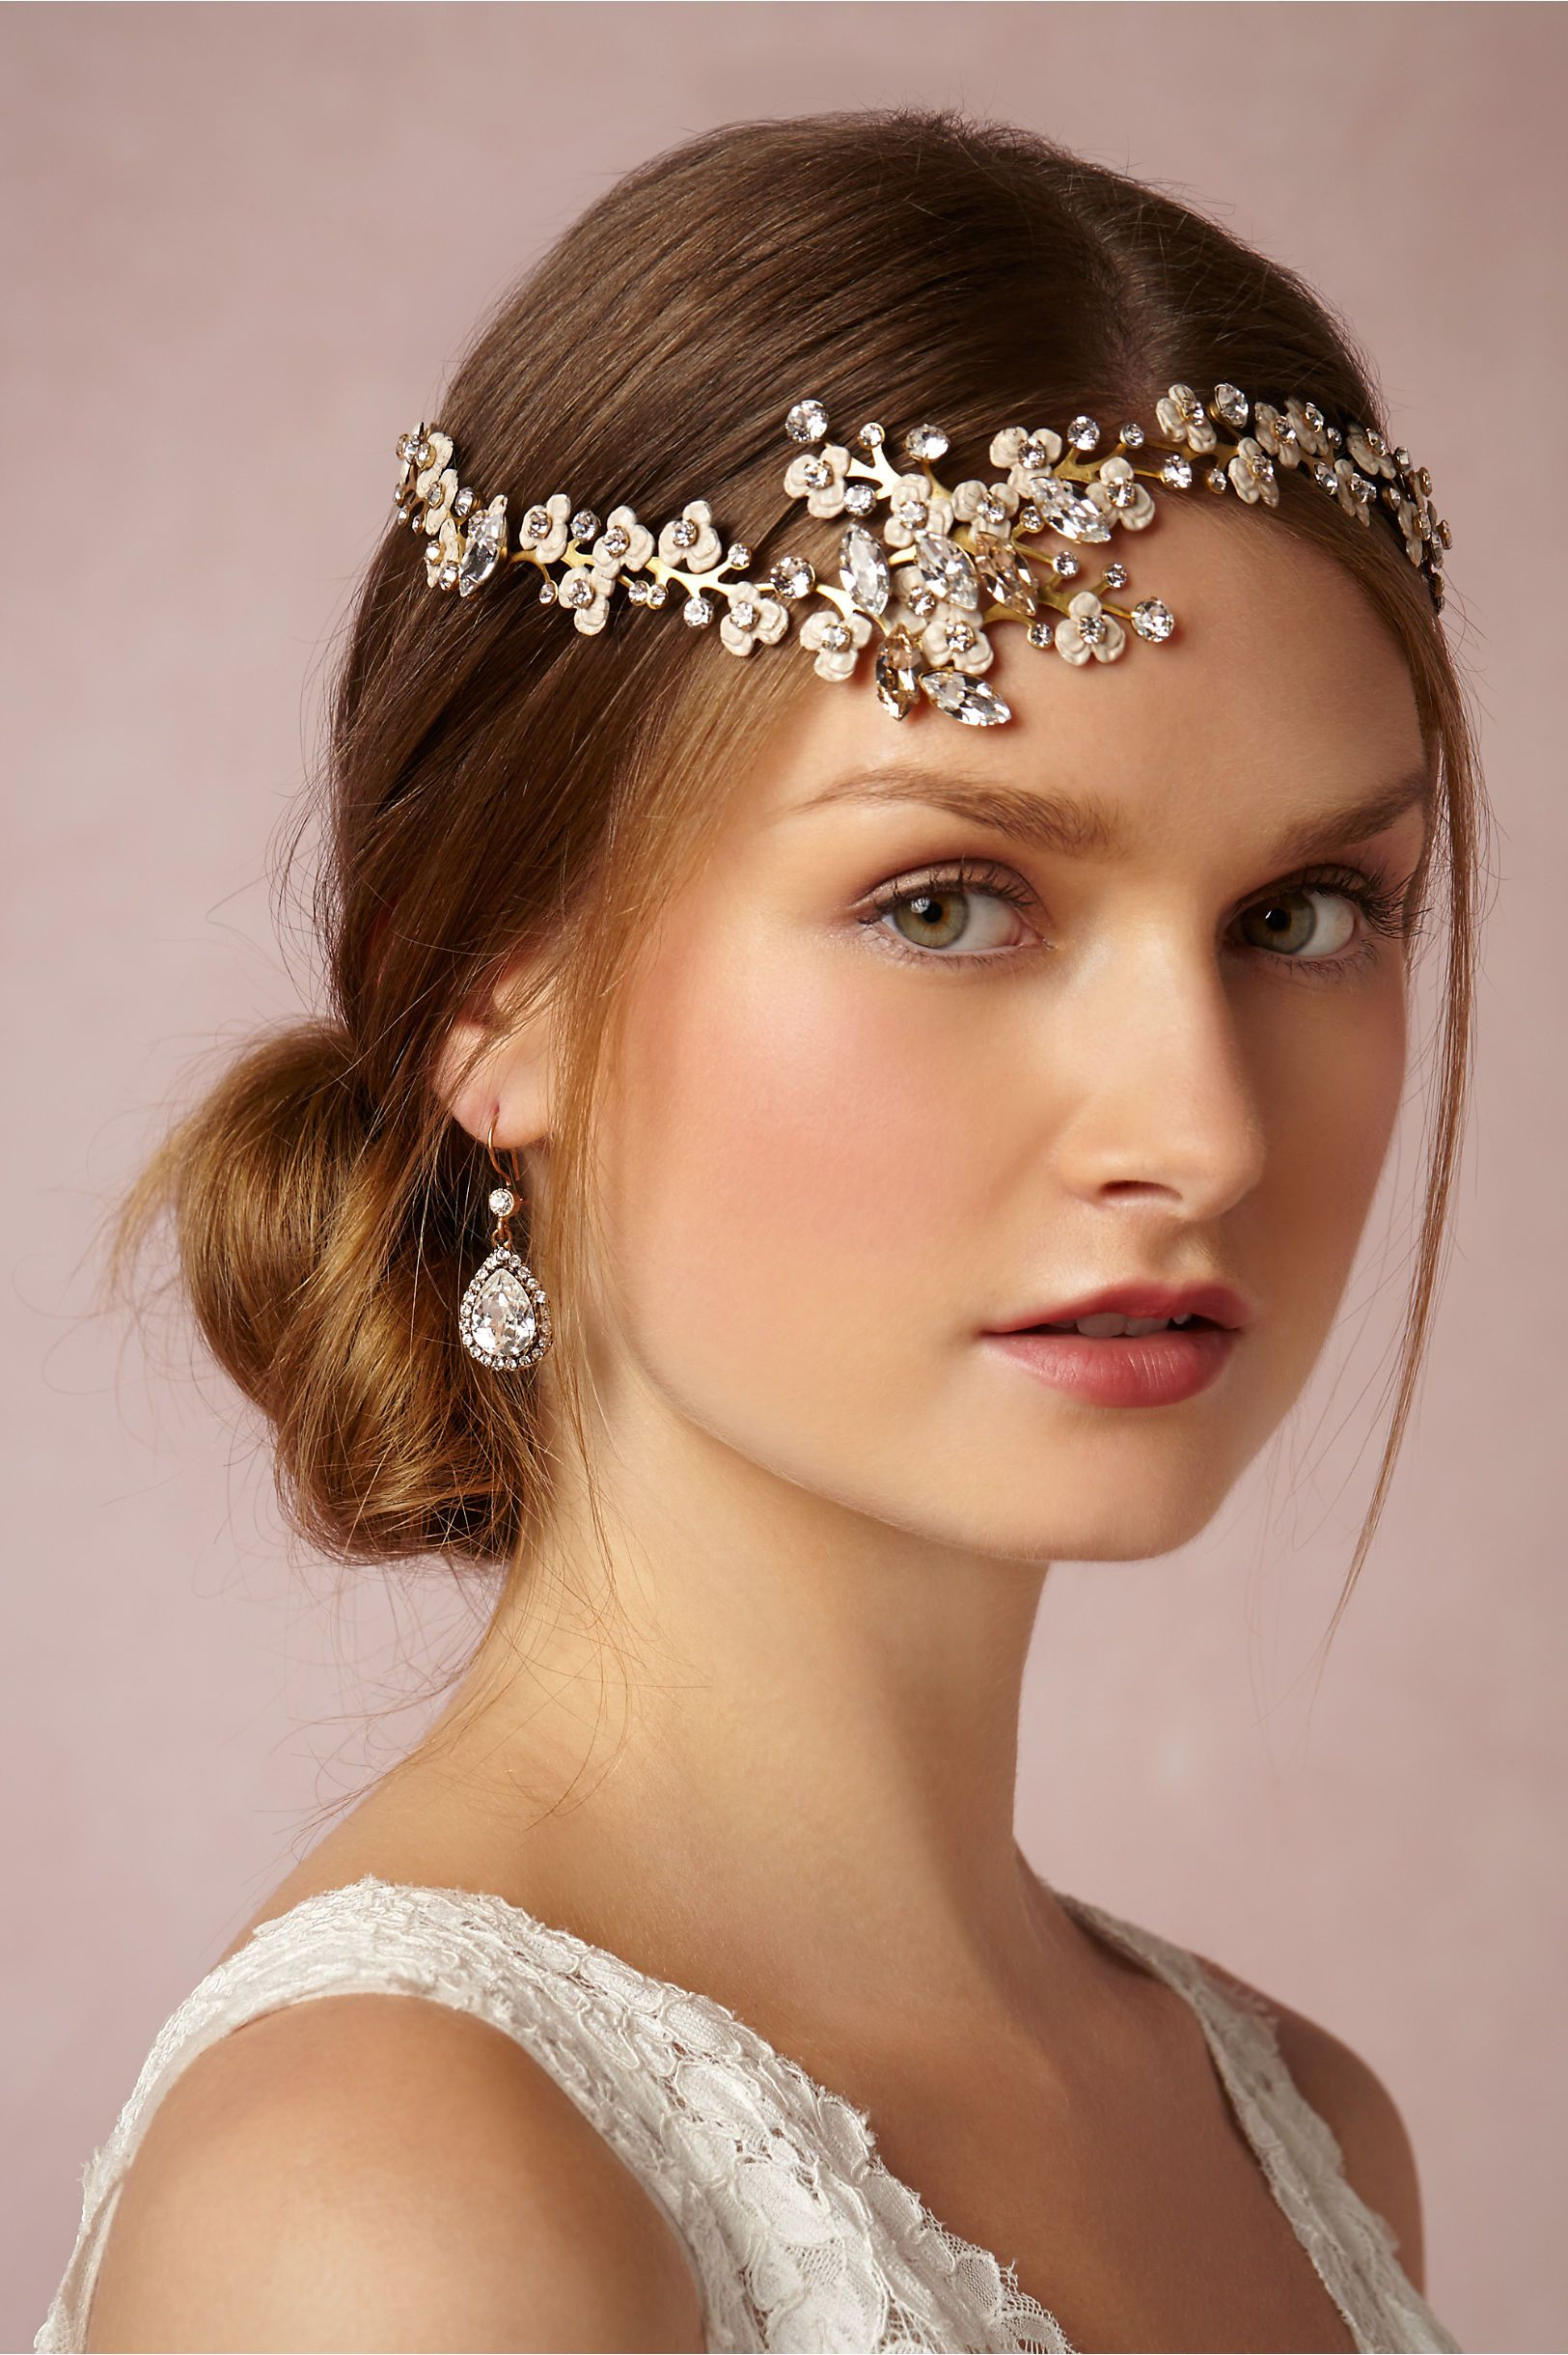 No Veil No Problem 15 Alternative Bridal Headpieces to Wear at